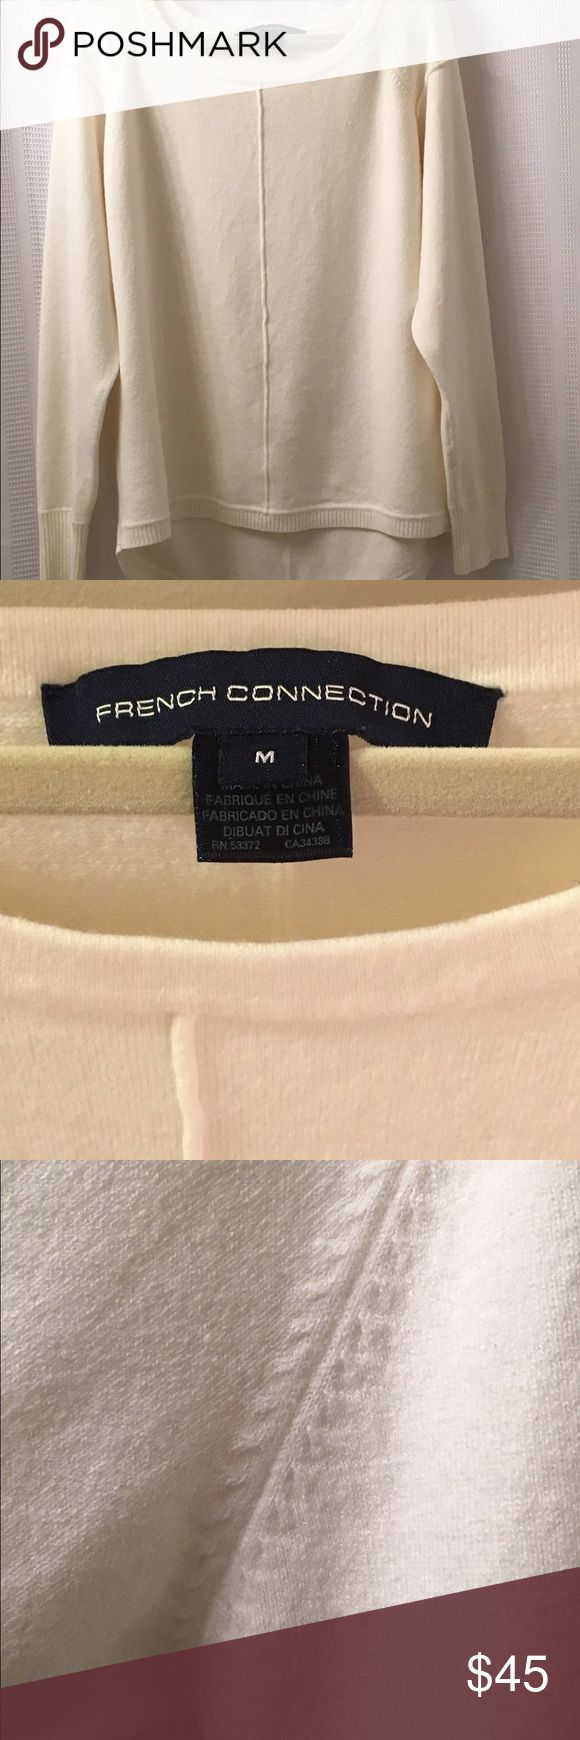 French Connection cream boyfriend sweater Cozy, cream colored French Connection boyfriend sweater. Can be paired with jeans or leggings and boots. Scoop neck, machine wash. Barely worn and no signs of wear. Perfect addition to your winter or fall wardrobe! French Connection Sweaters Crew & Scoop Necks